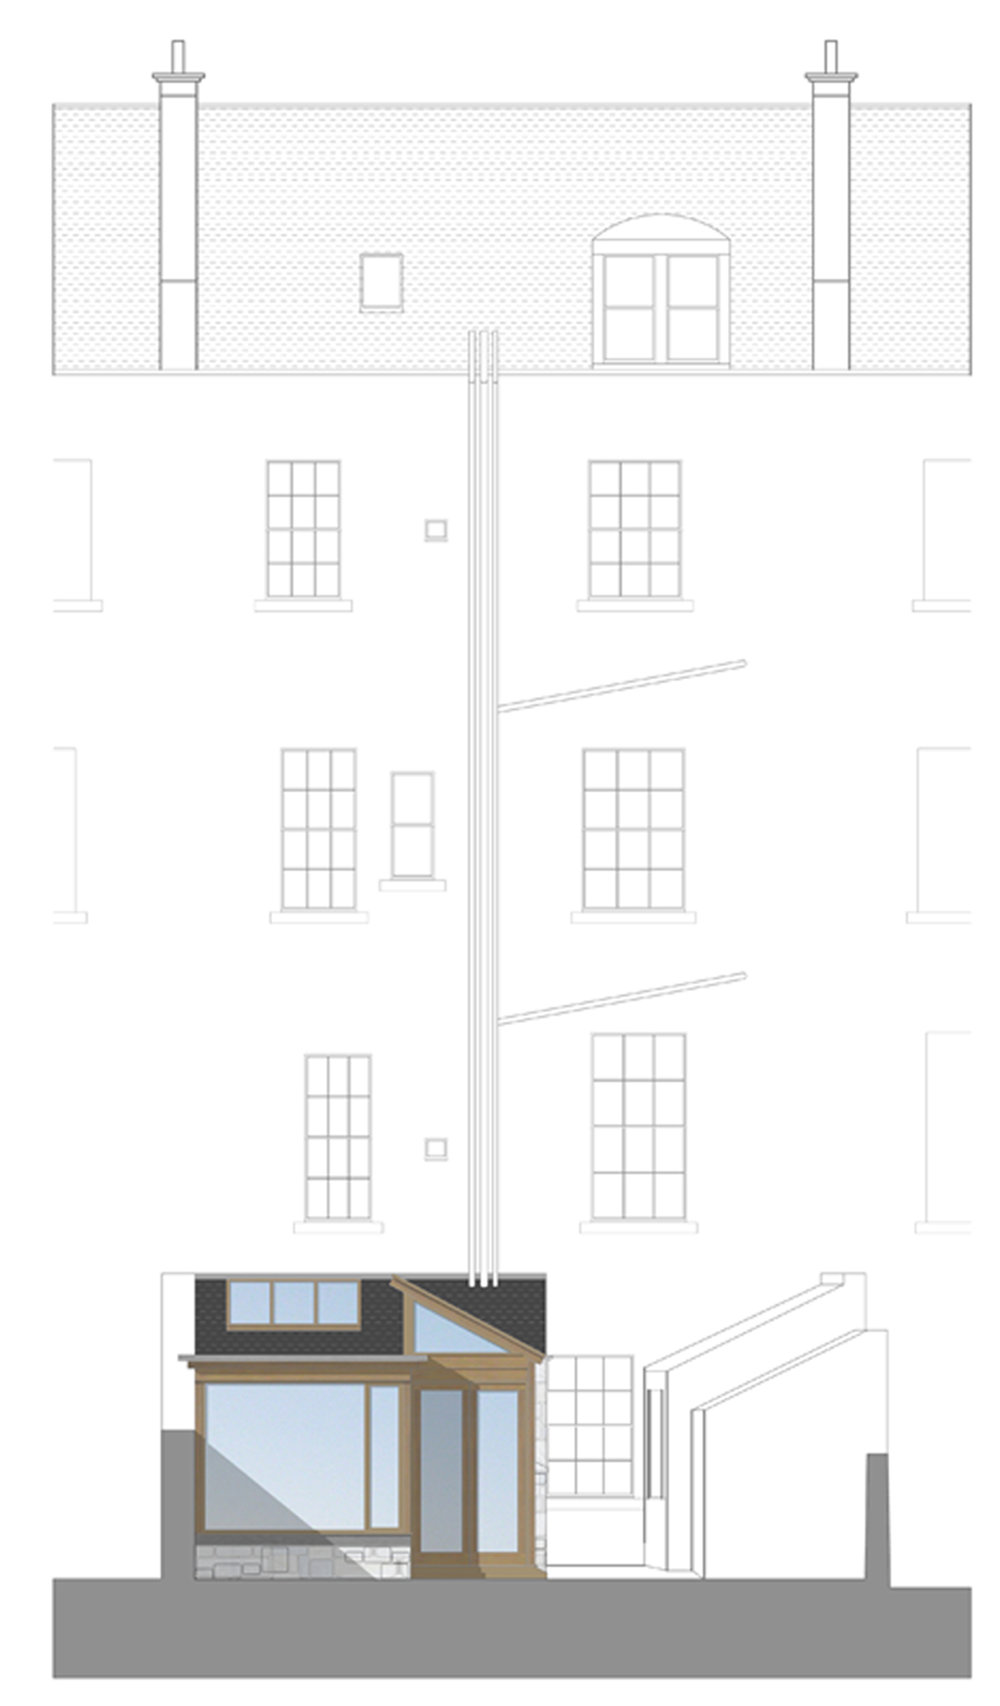 David Blaikie Architects_Clarendon Crescent Elevation